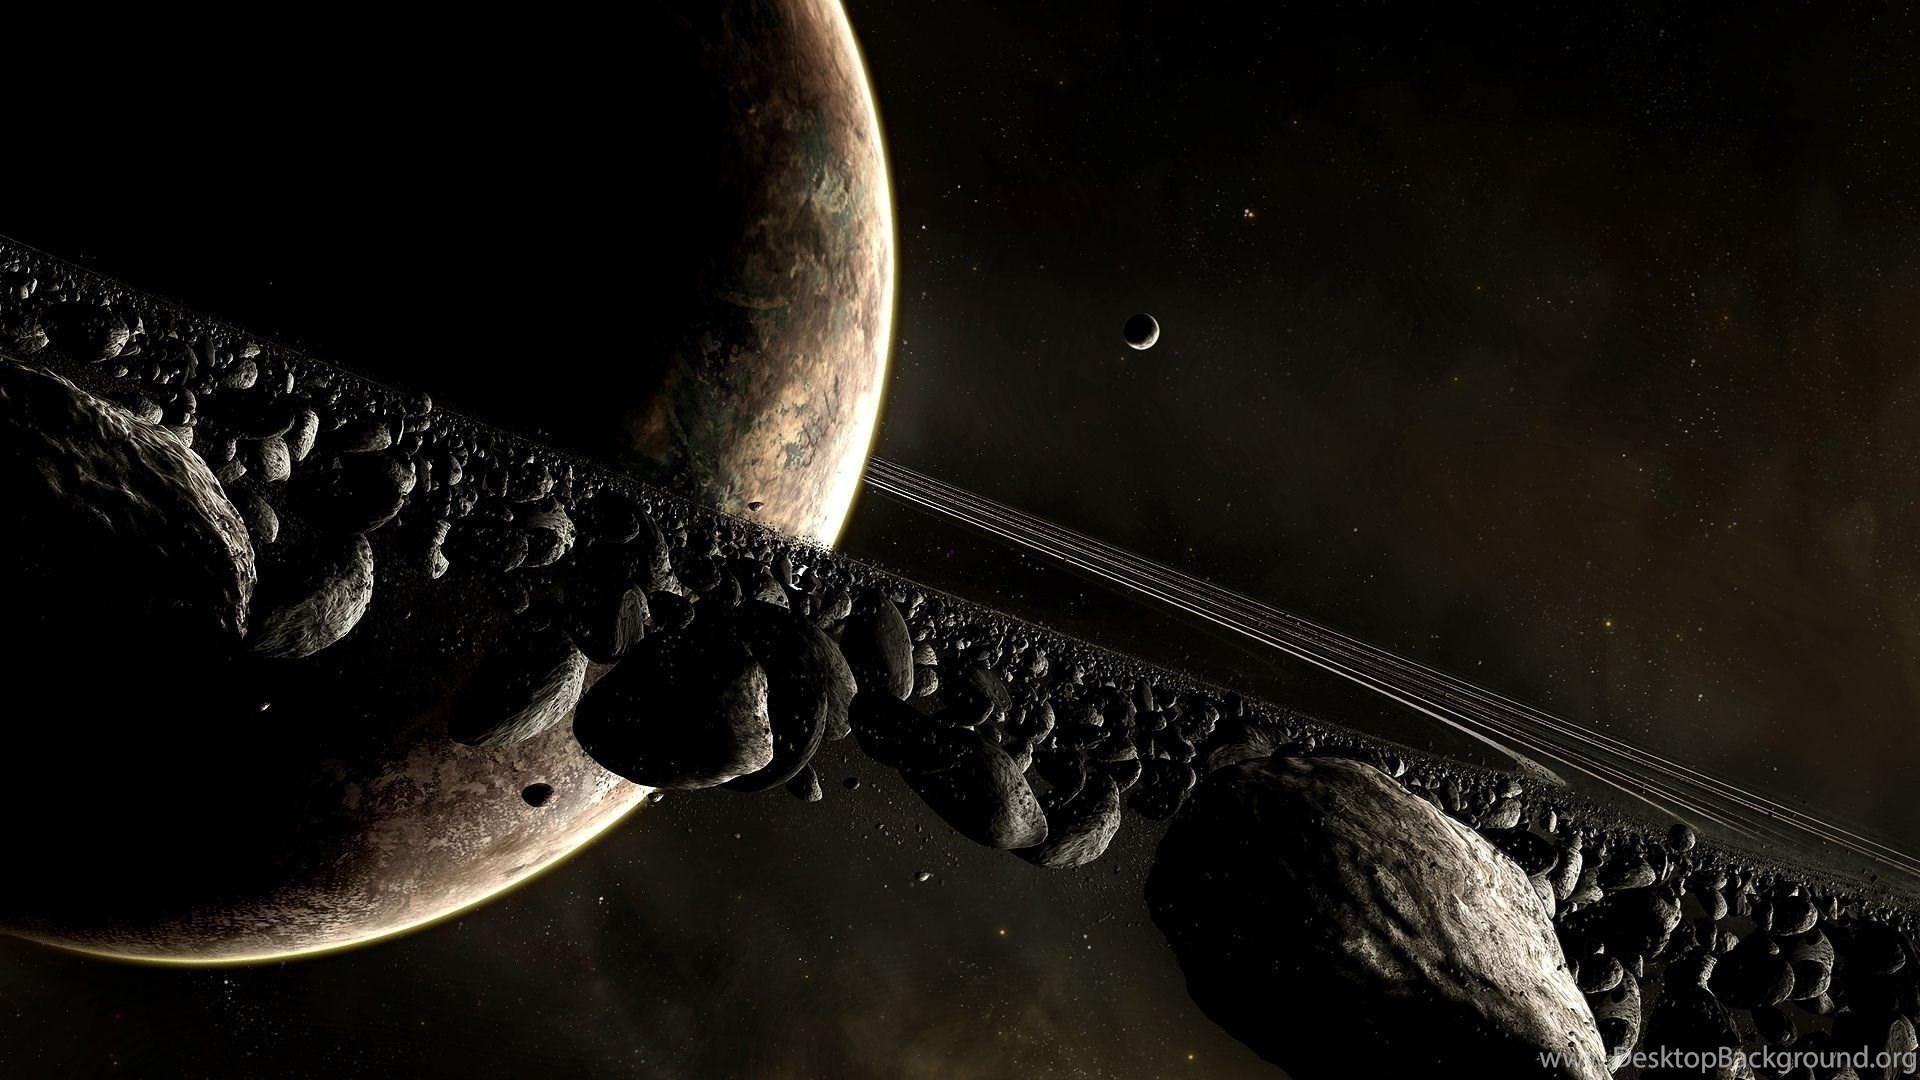 Page 3 Full HD 1080p Space Wallpapers Desktop Backgrounds